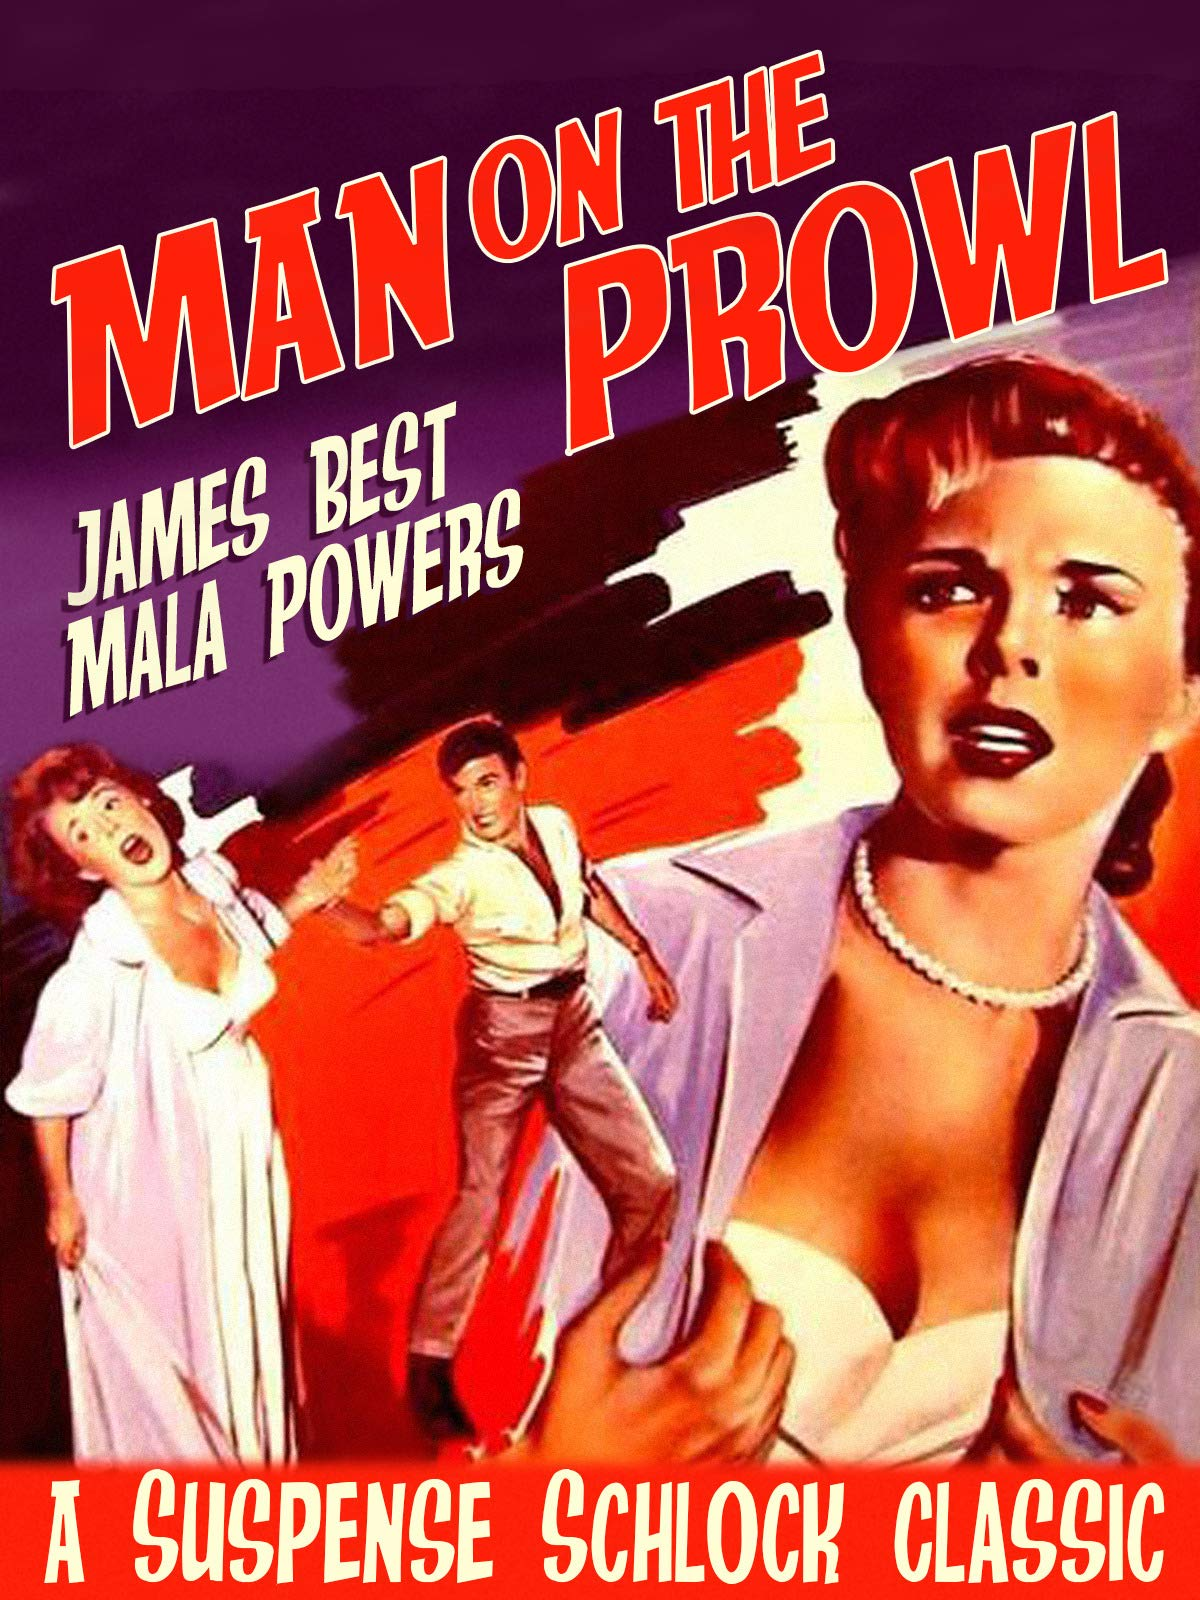 Man On The Prowl - James Best, Mala Powers, A Suspense Schlock Classic!